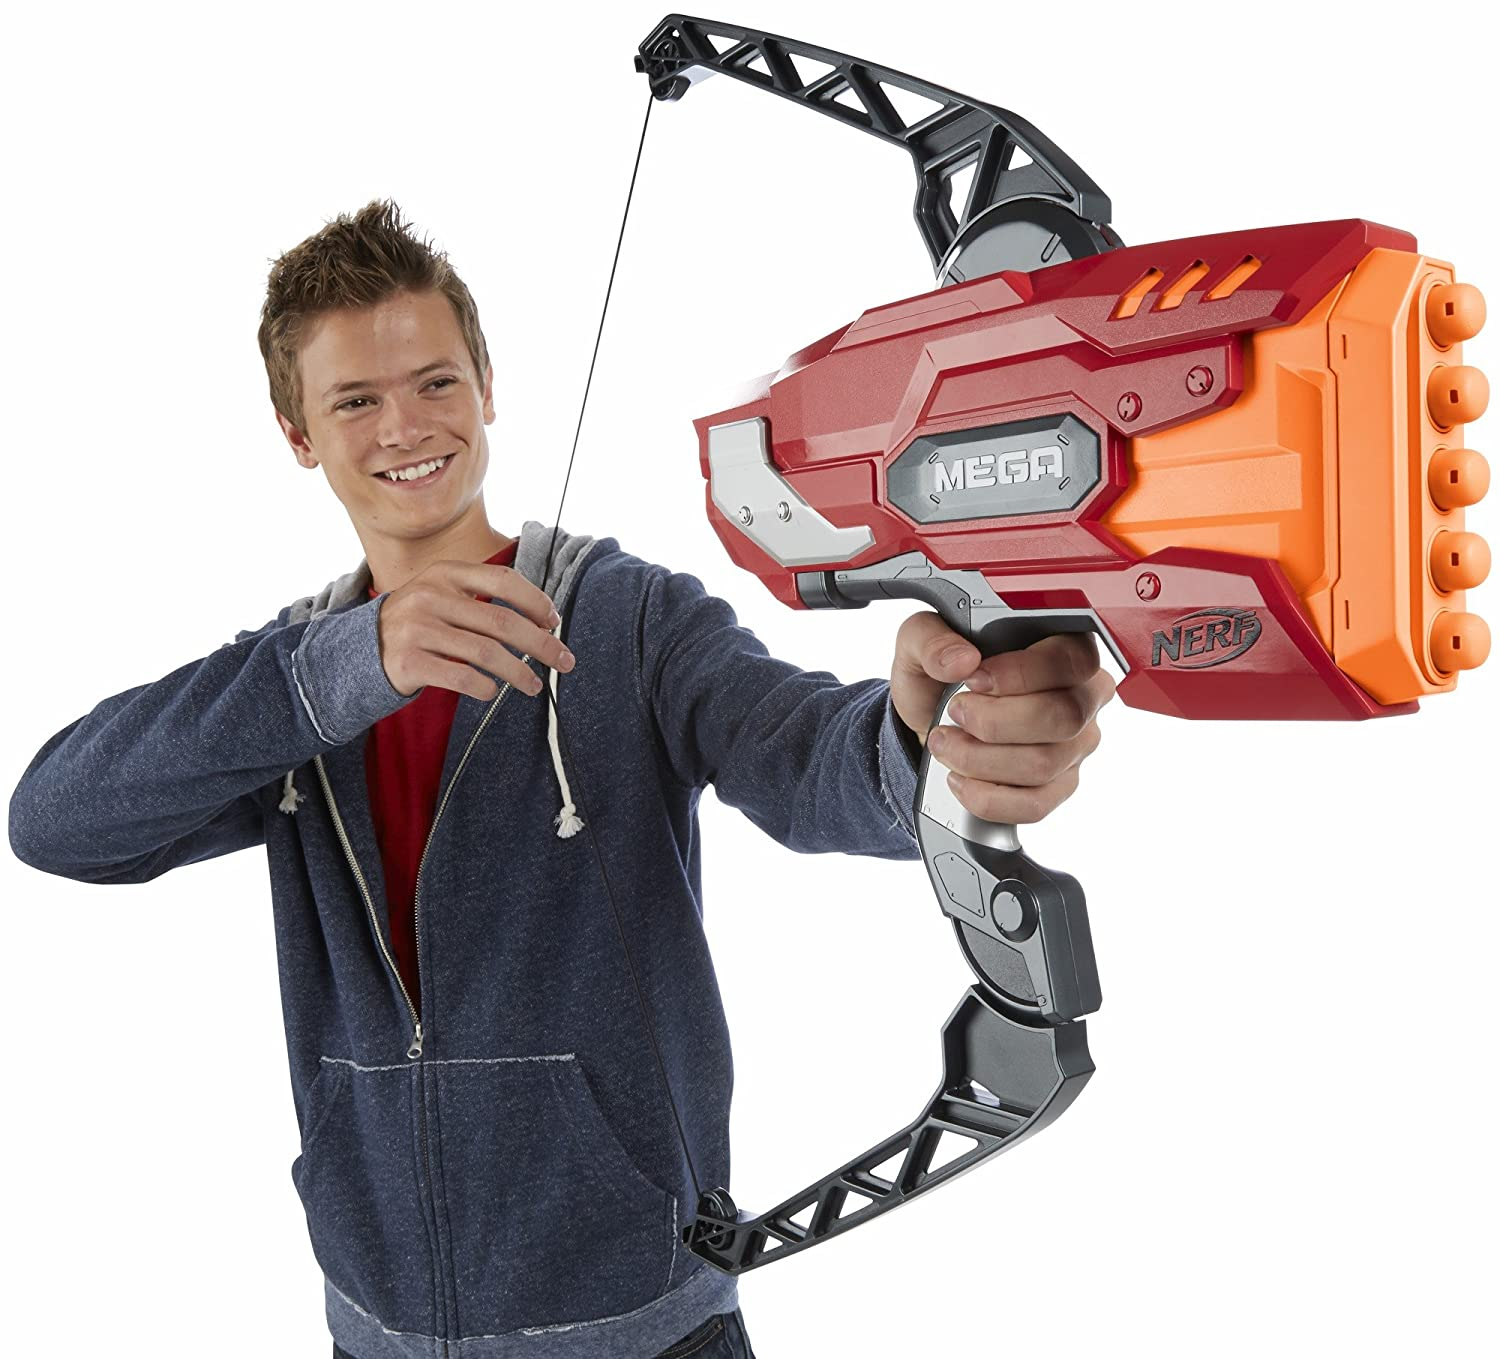 Buy Nerf Mega Thunder Bow Blaster Online at Low Prices in India - Amazon.in